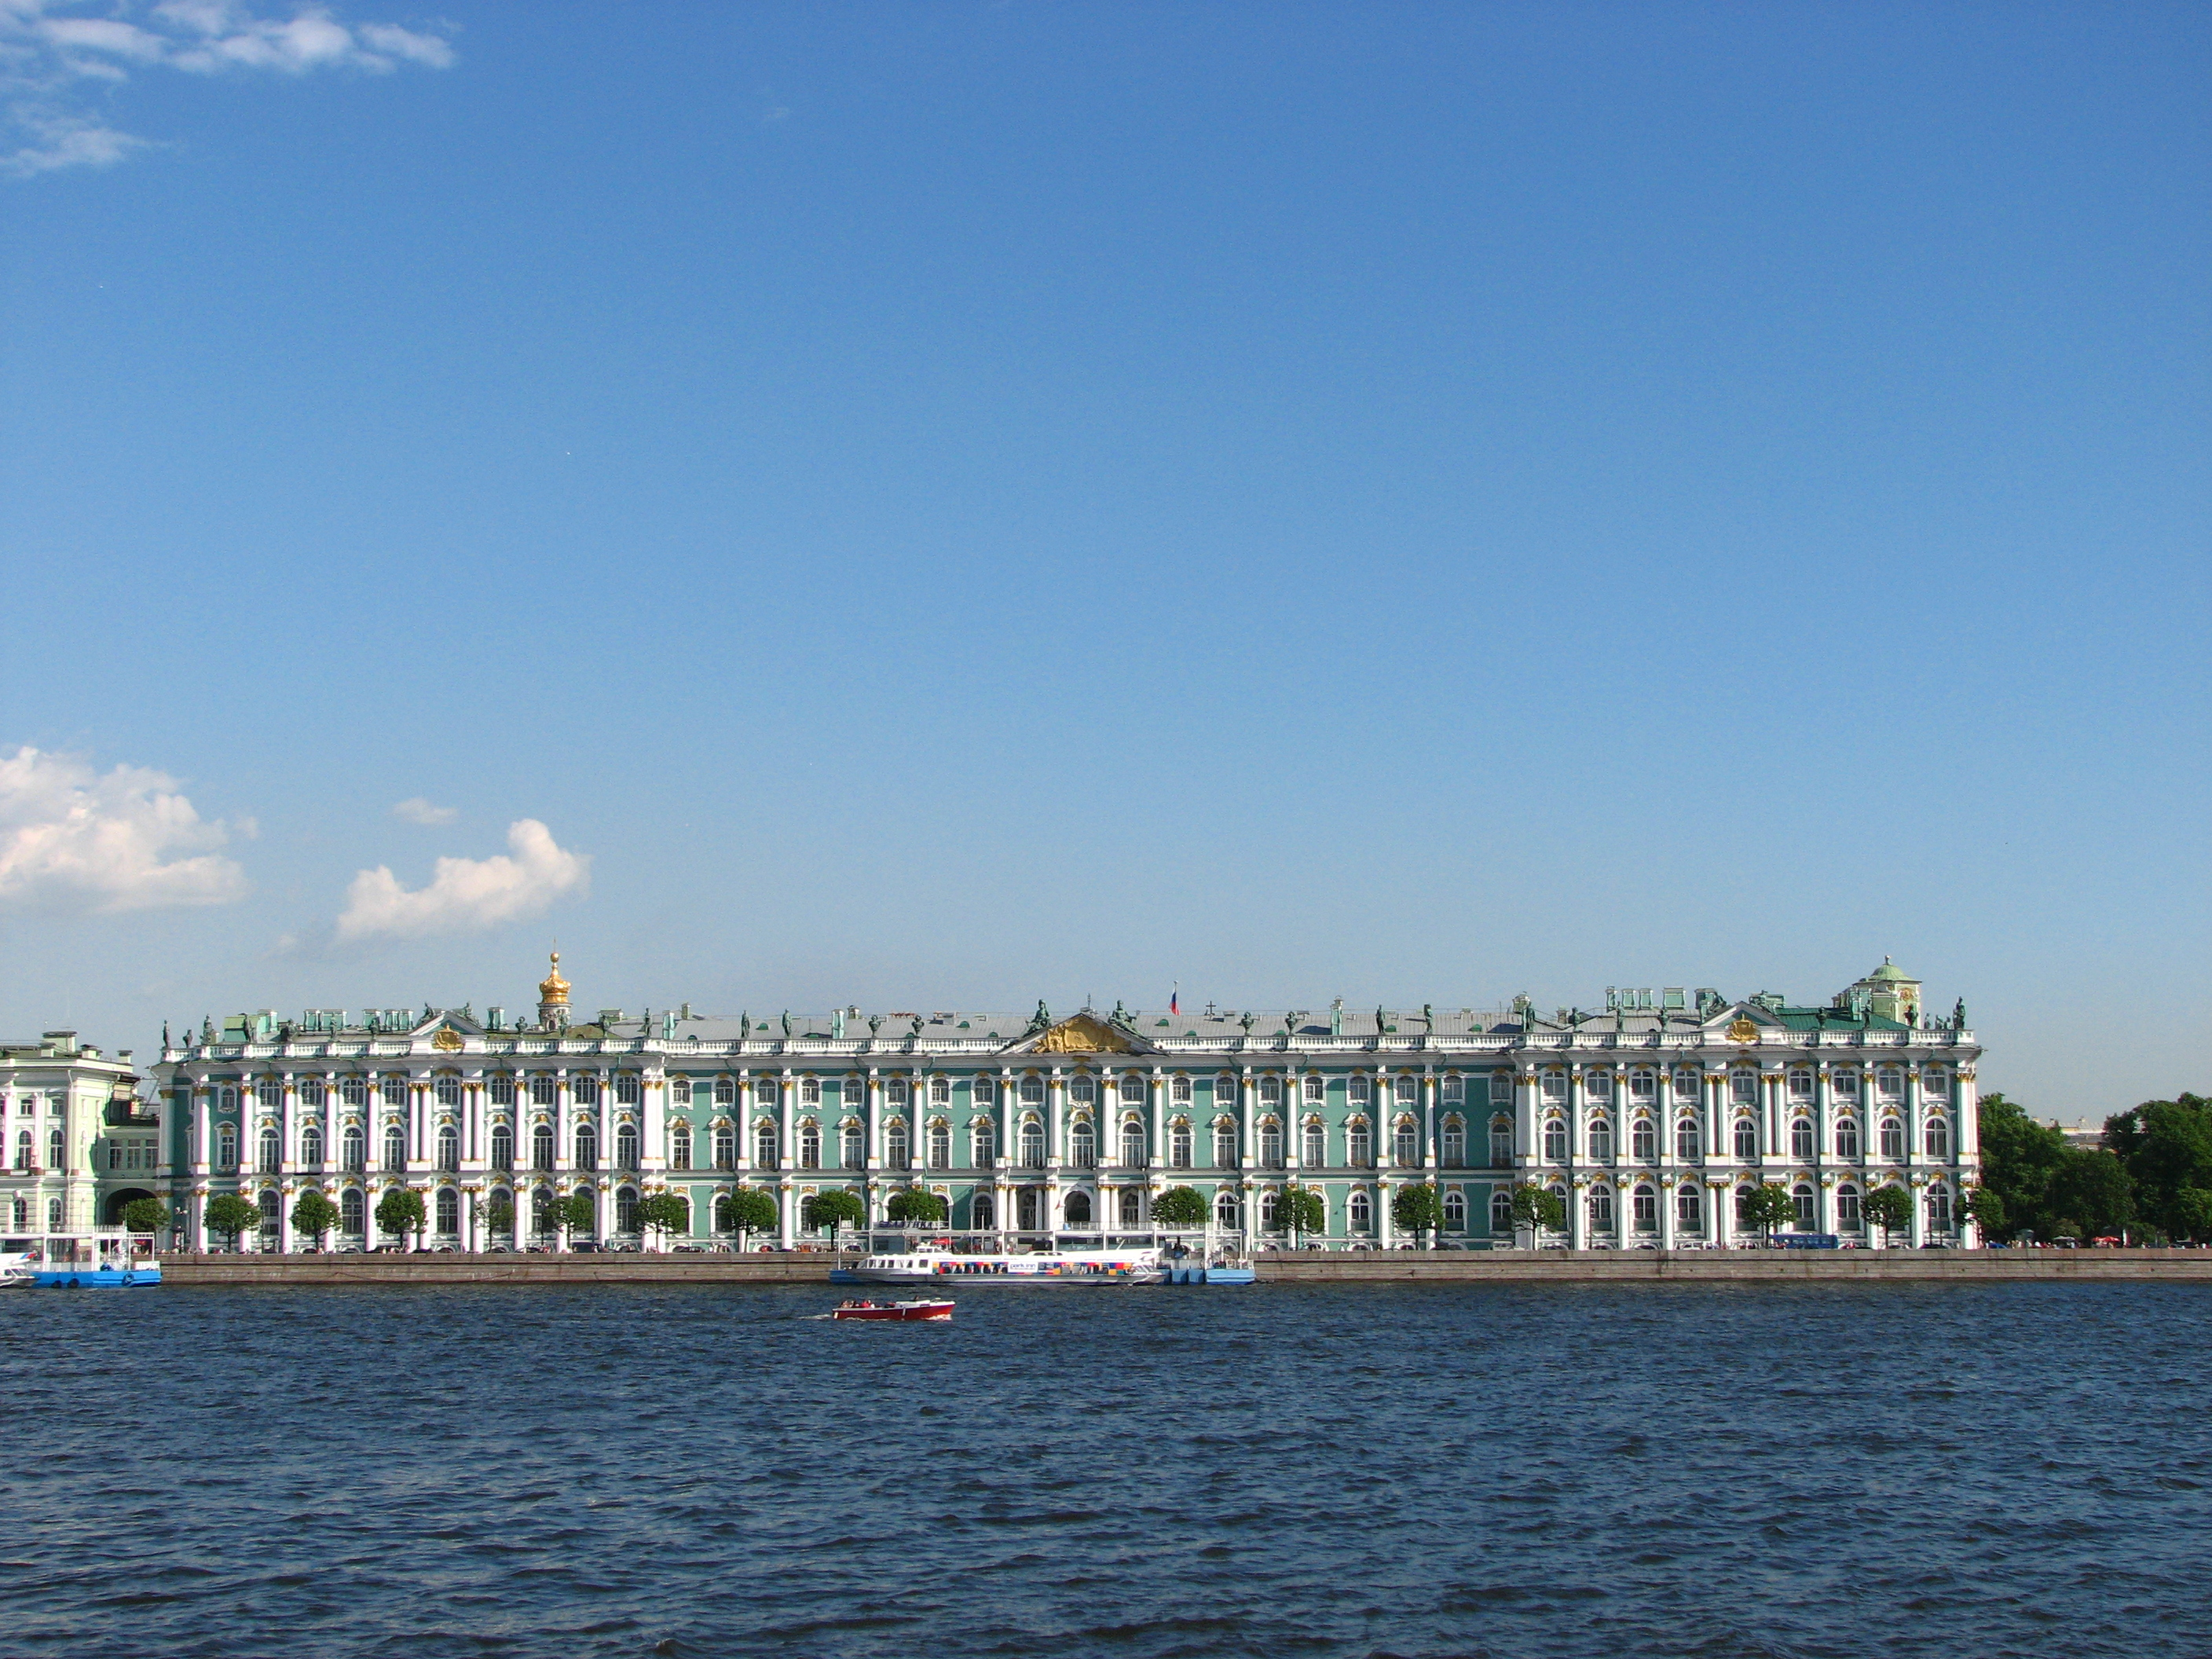 https://i1.wp.com/upload.wikimedia.org/wikipedia/commons/9/92/Winter_Palace_01.JPG